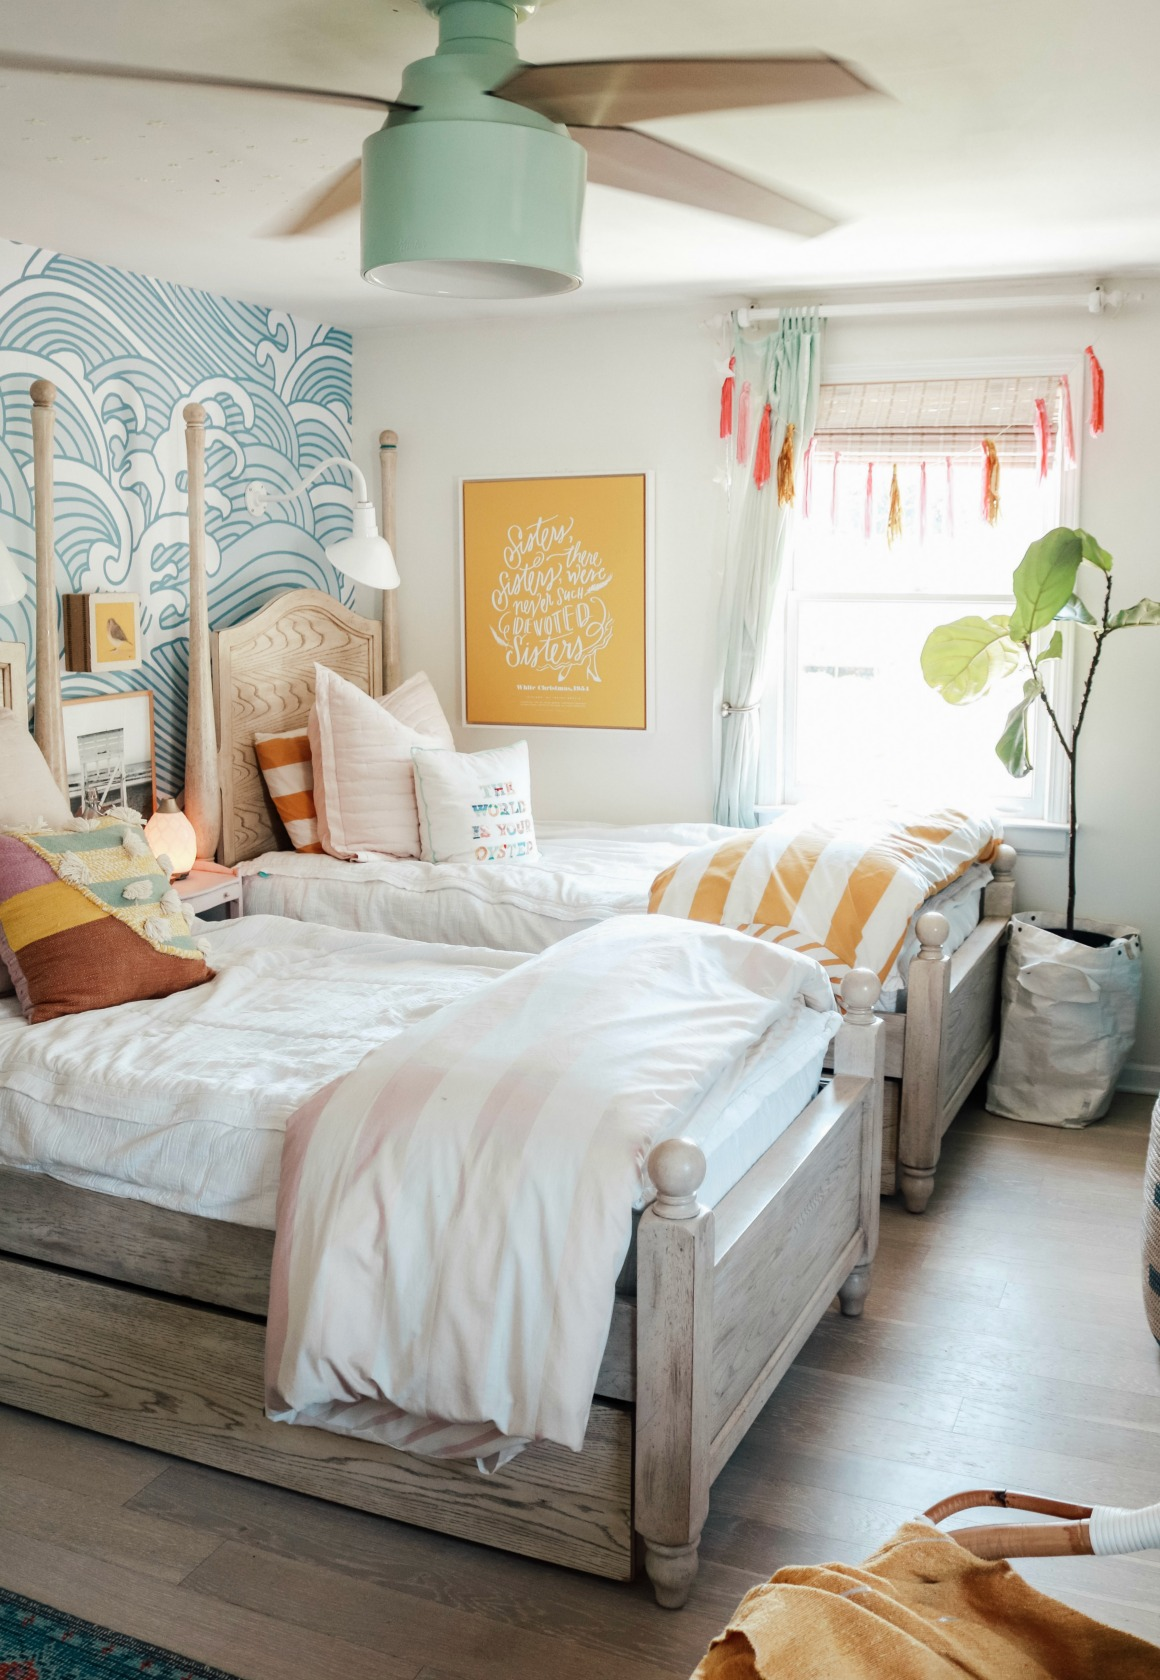 15 Things To Get Your Home Summer Ready!